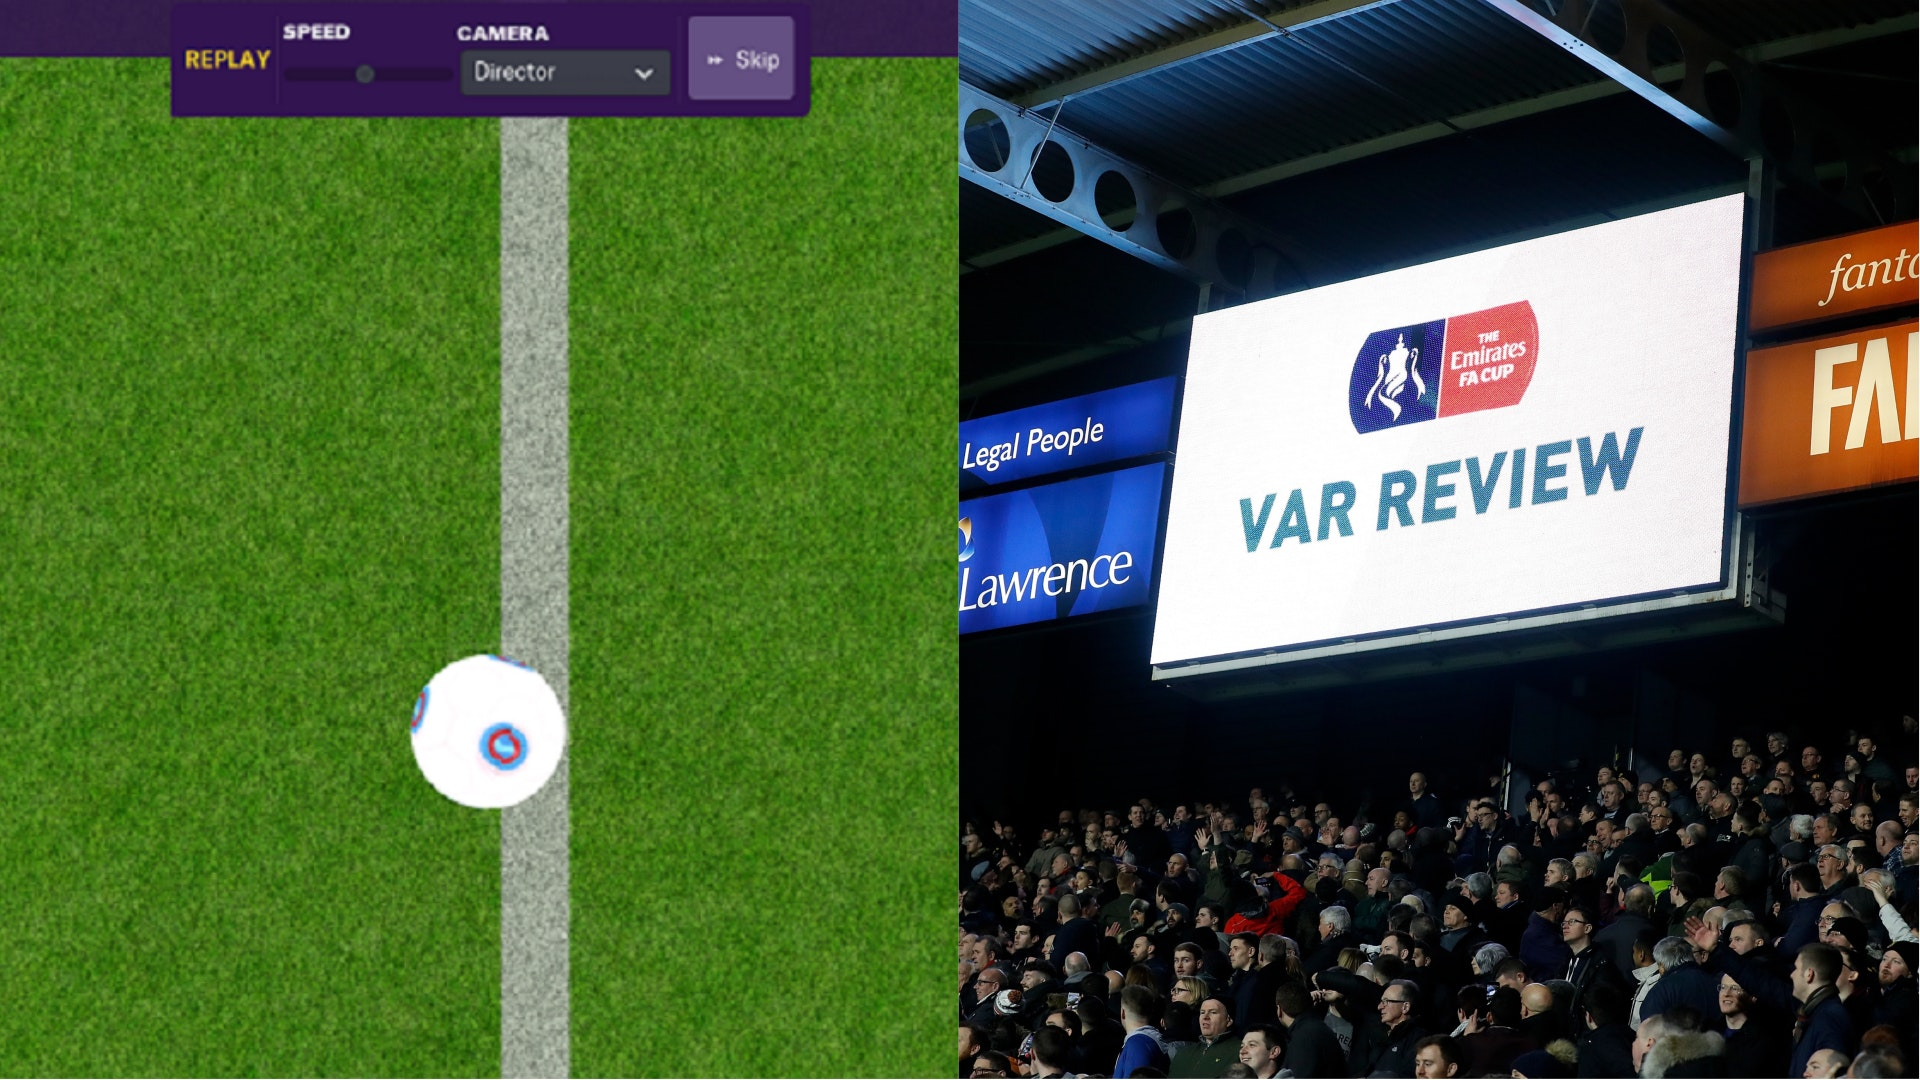 Video Technology One Of Many Features To Be Included In Football